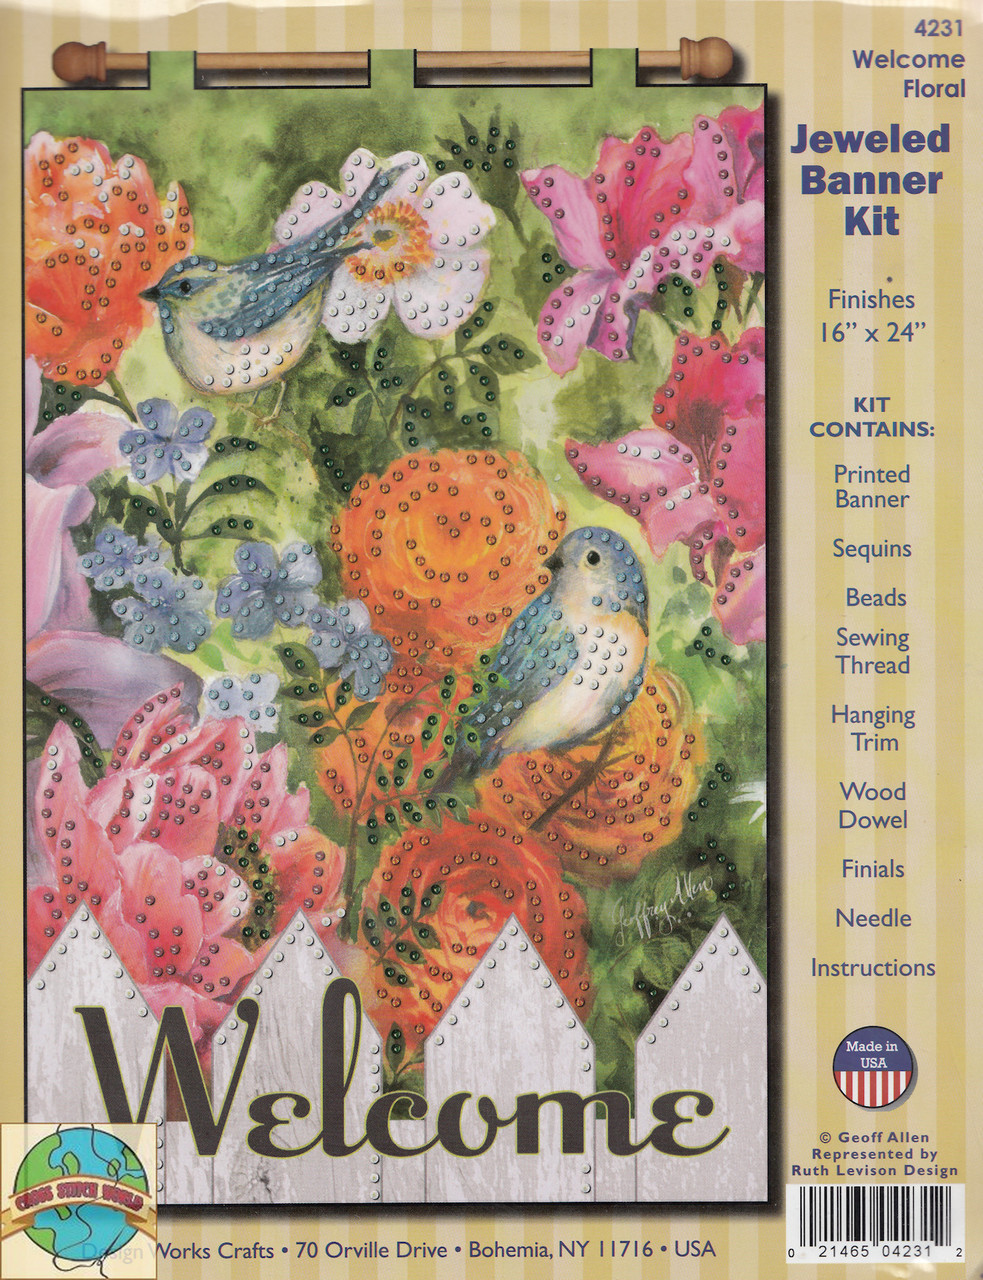 Design Works - Welcome Floral Jeweled Banner